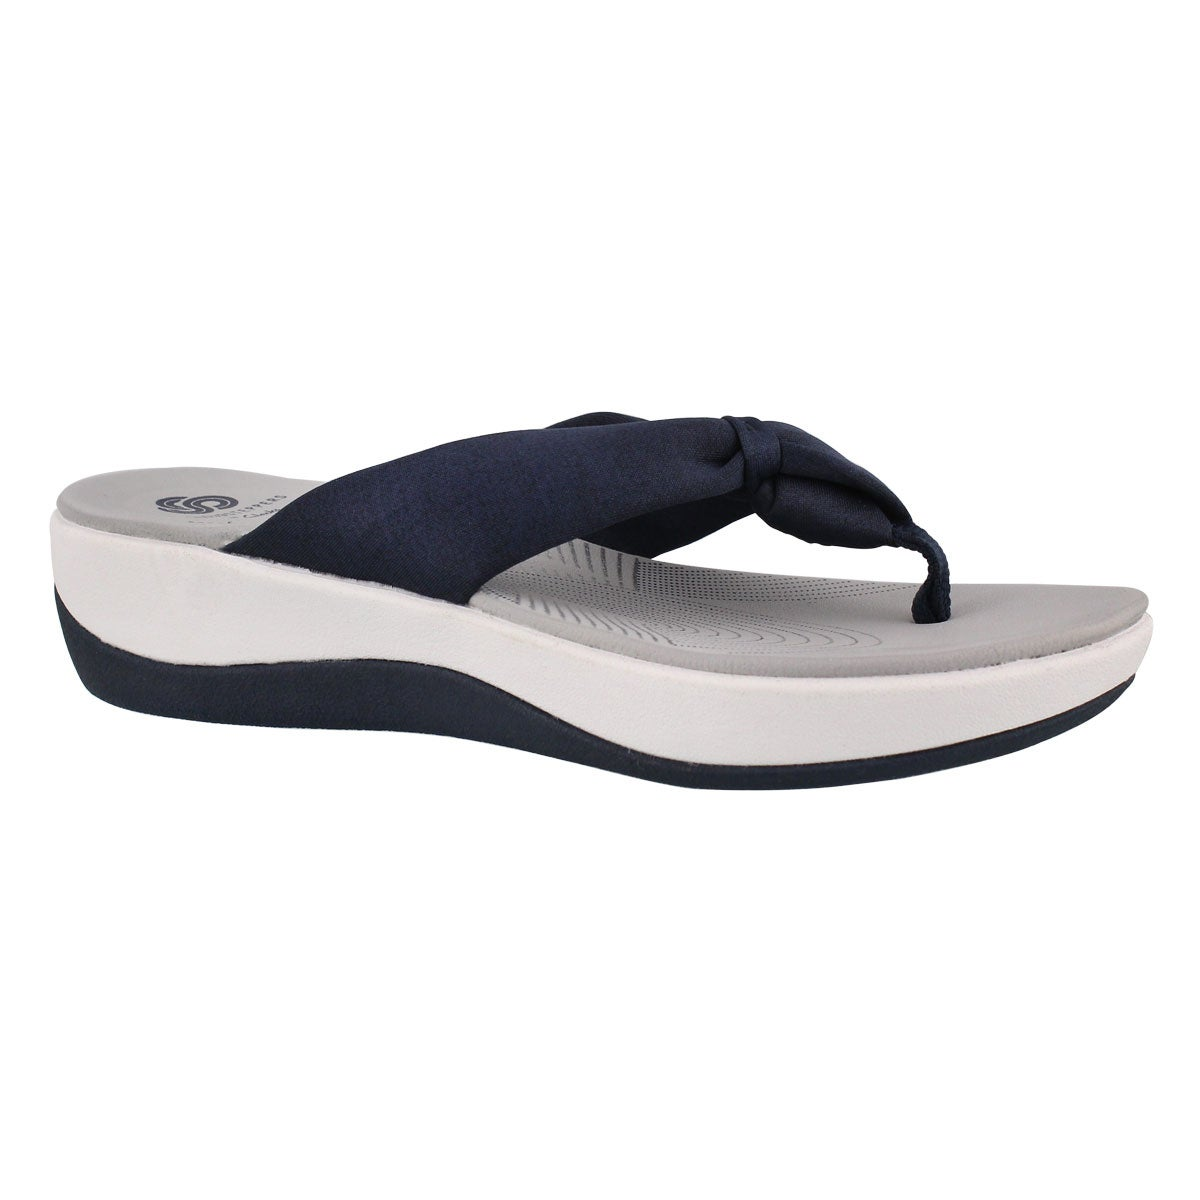 Lds Arla Glison blue thong wedge sandal